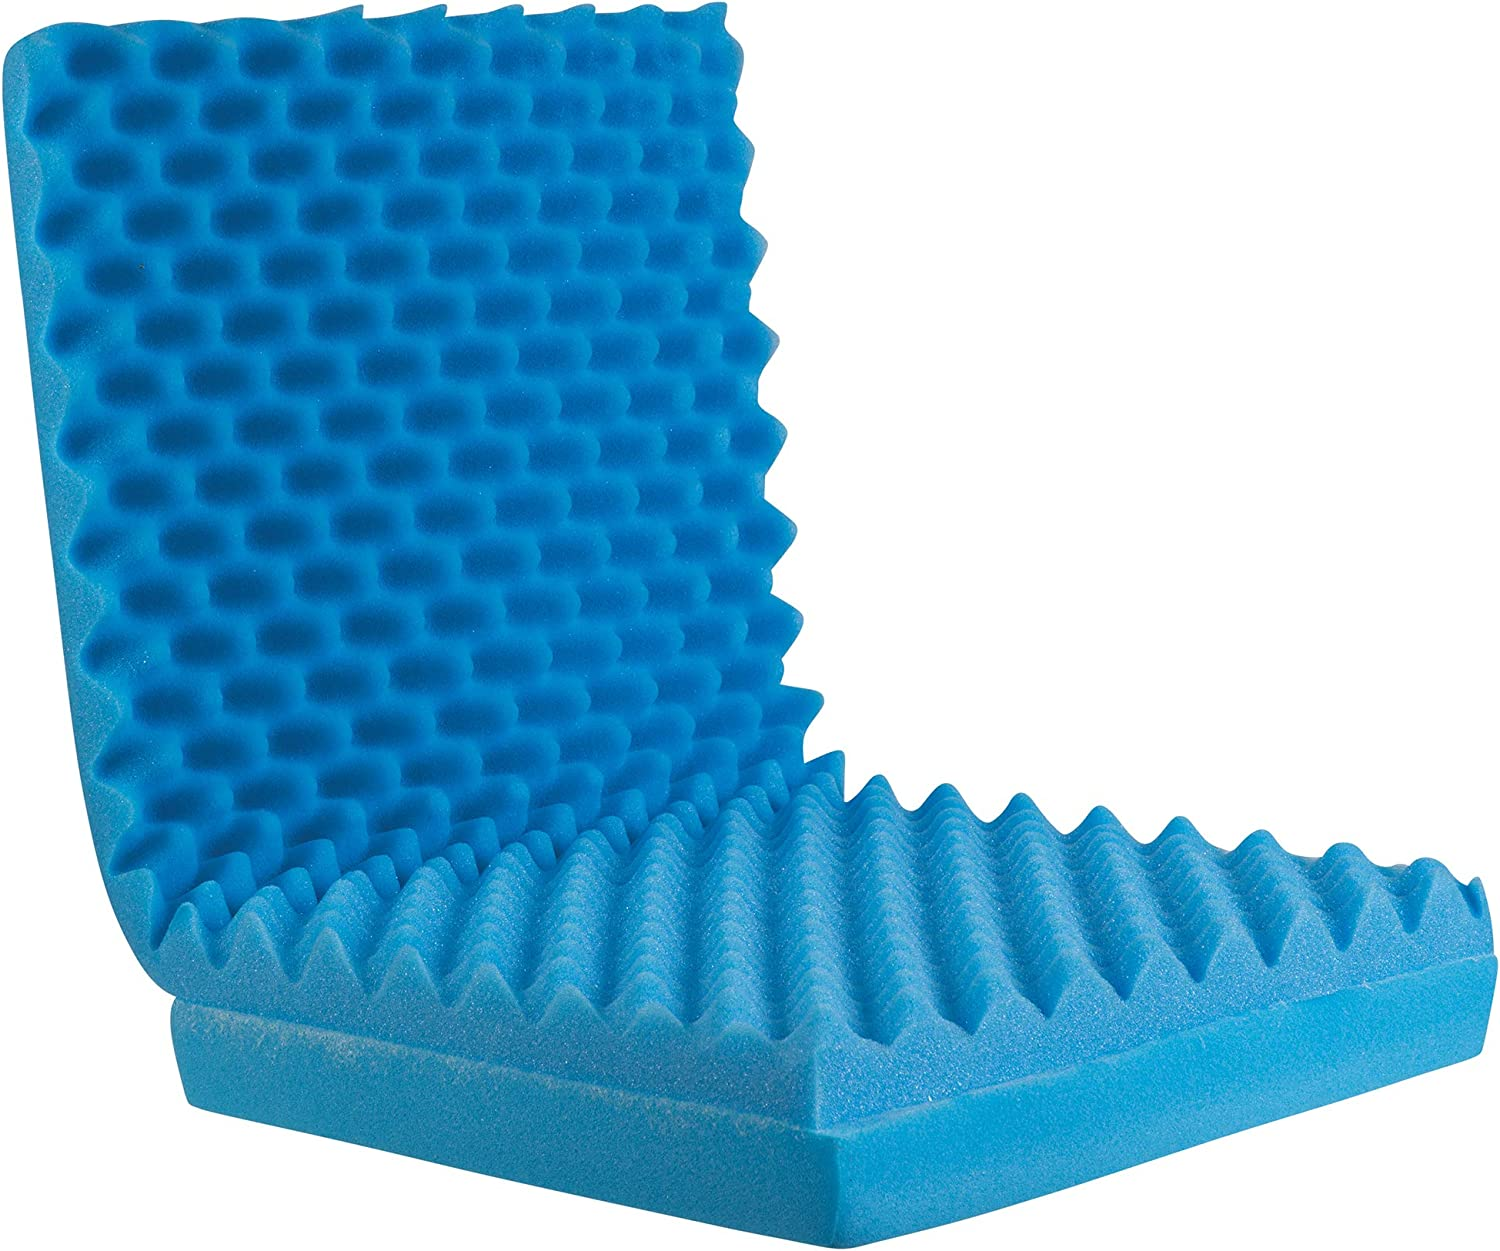 Egg Crate Sculpted Foam Seat Cushion with Full Back, Blue: Health & Personal Care